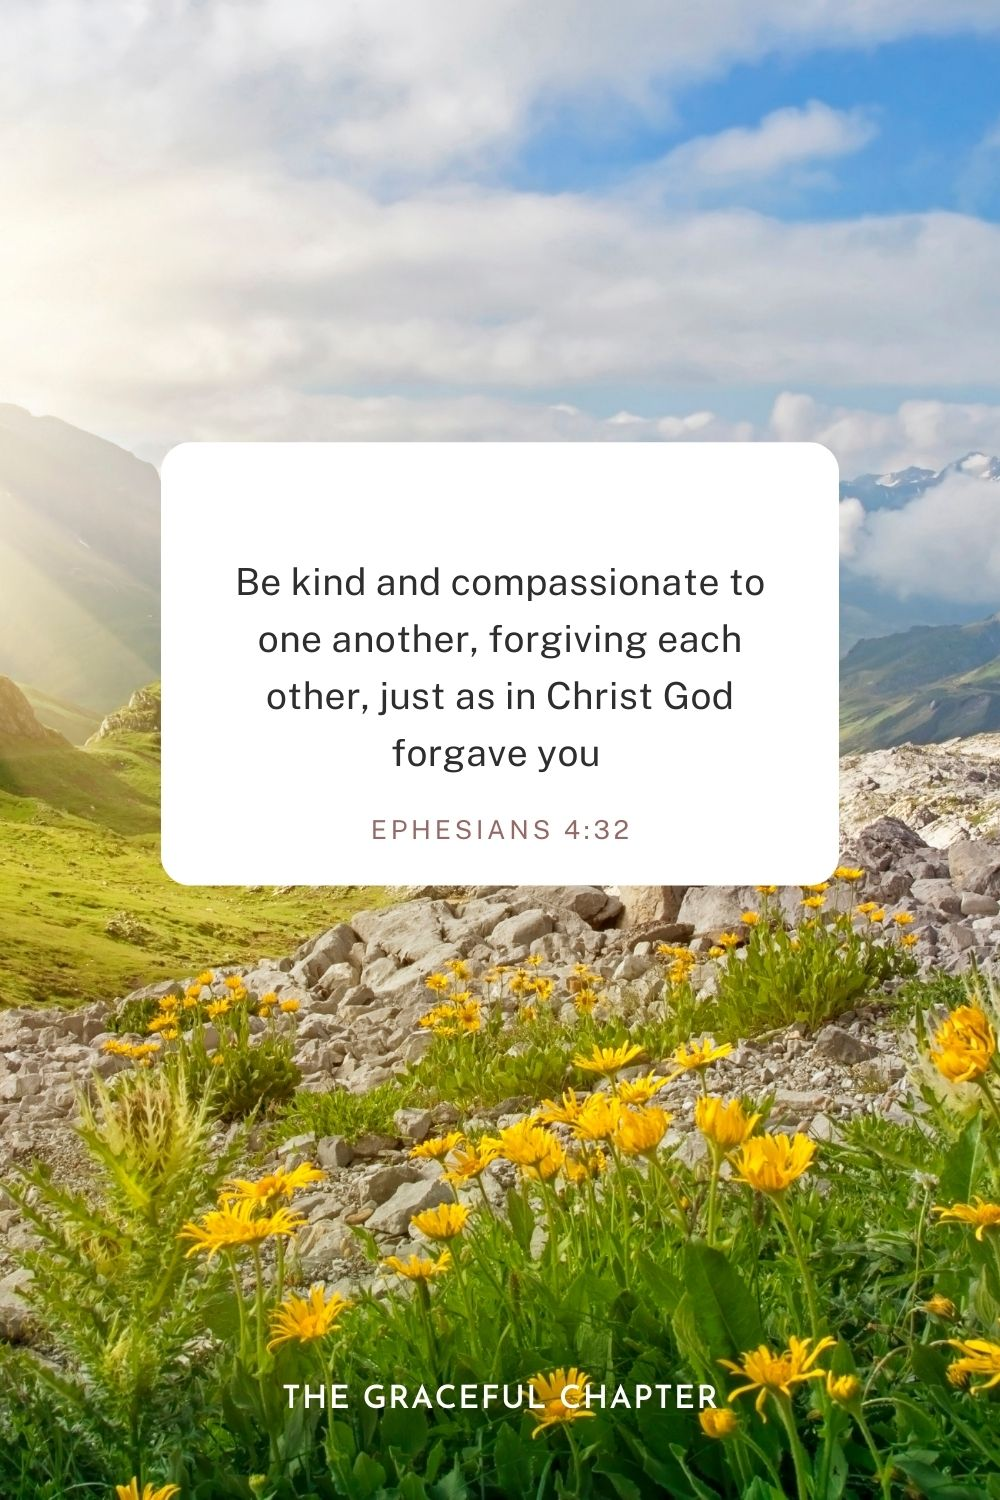 Be kind and compassionate to one another, forgiving each other, just as in Christ God forgave you Ephesians 4:32